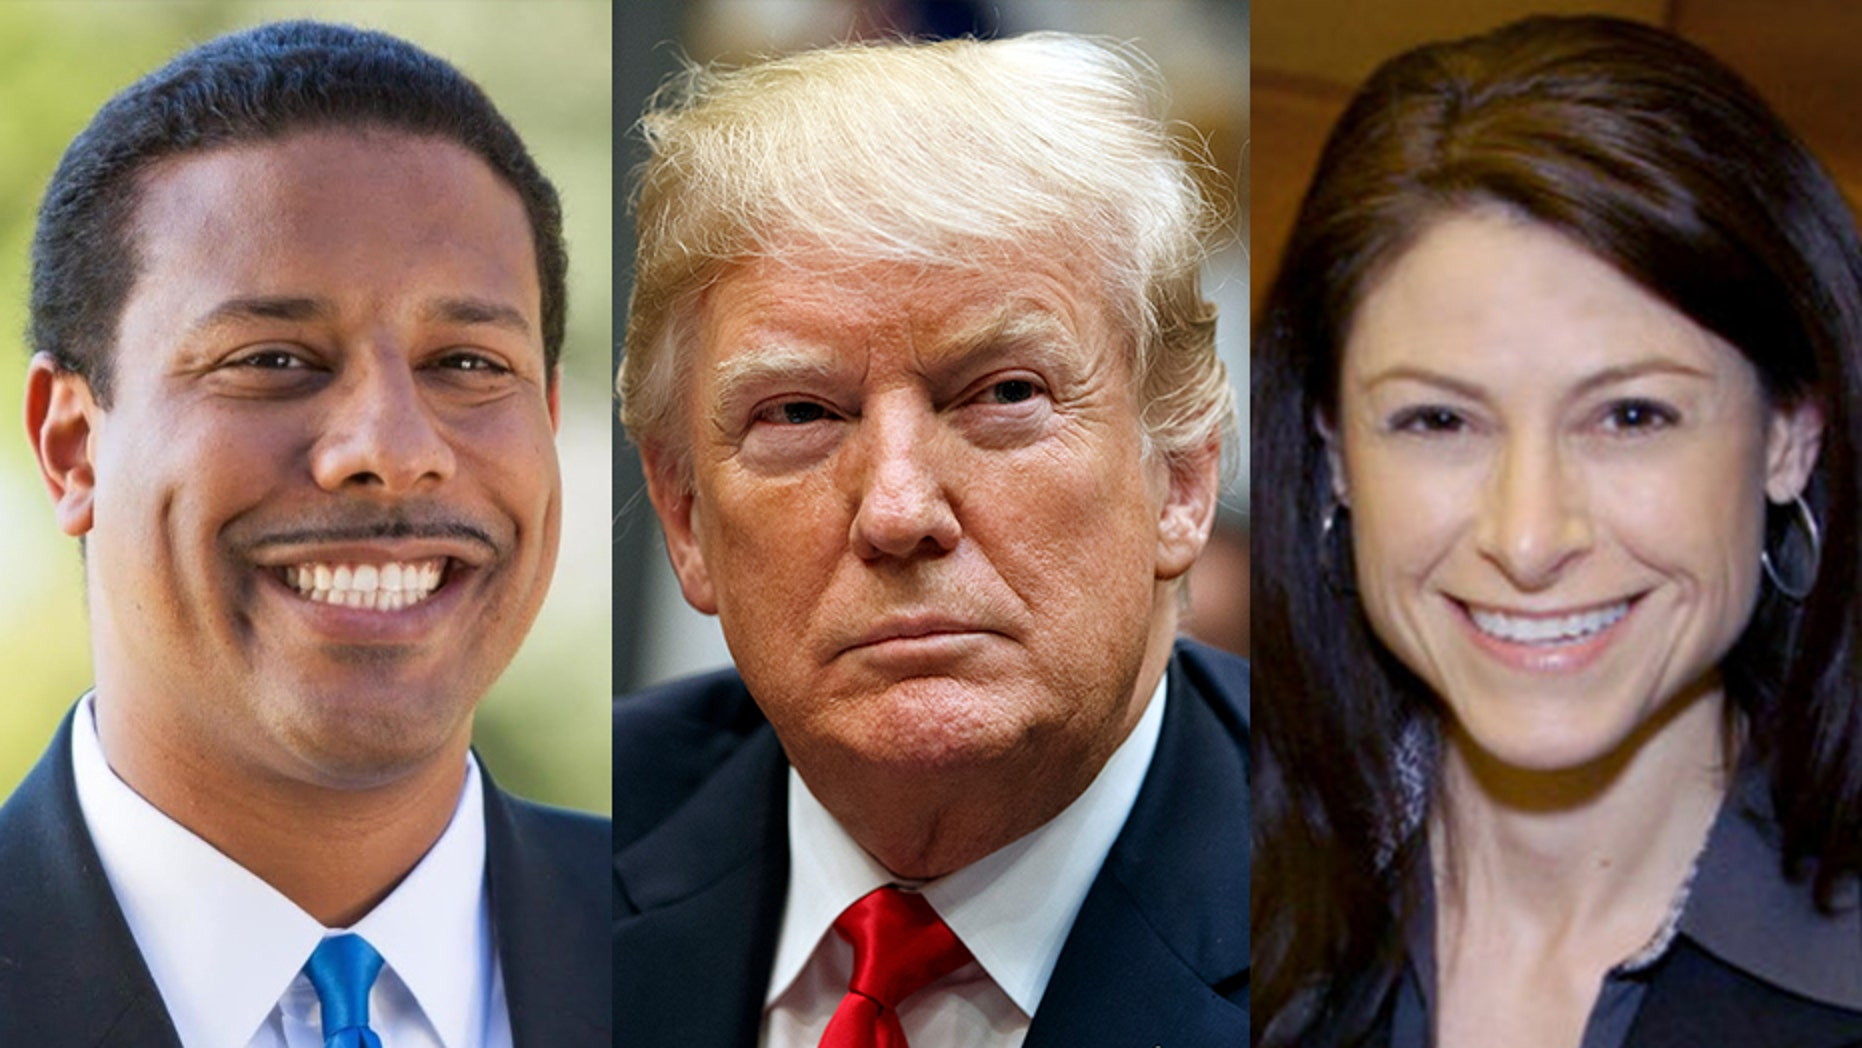 Florida AG candidate Sean Shaw, left, and Michigan AG candidate Dana Nessel, right, are among the Democratic candidates vying for the chance to engage in legal battle with President Trump.